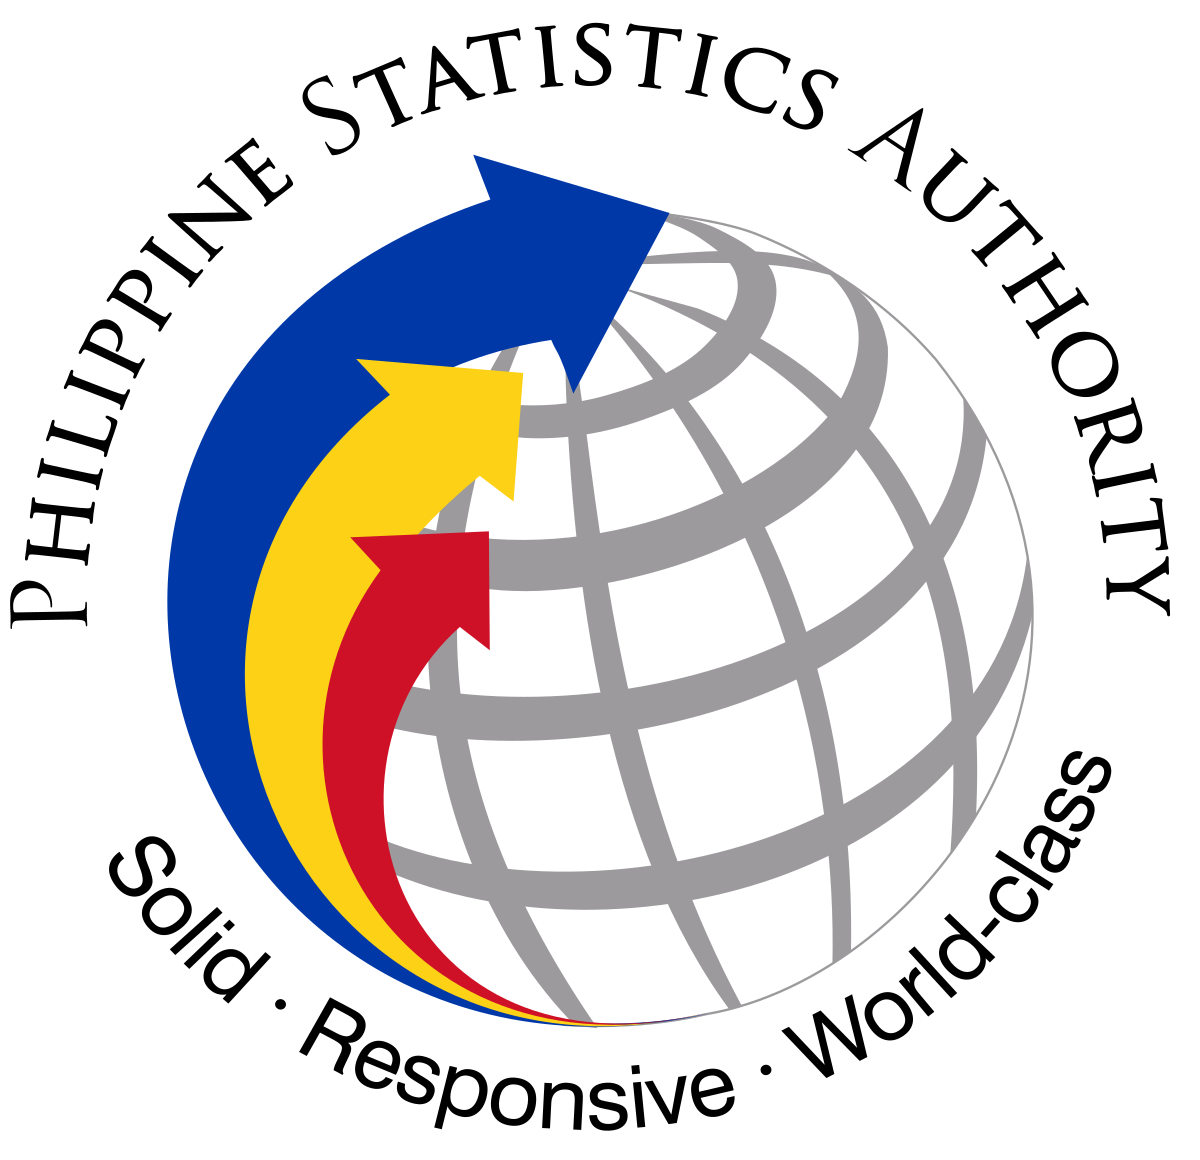 Forms and Guides from National Statistics Office (NSO.